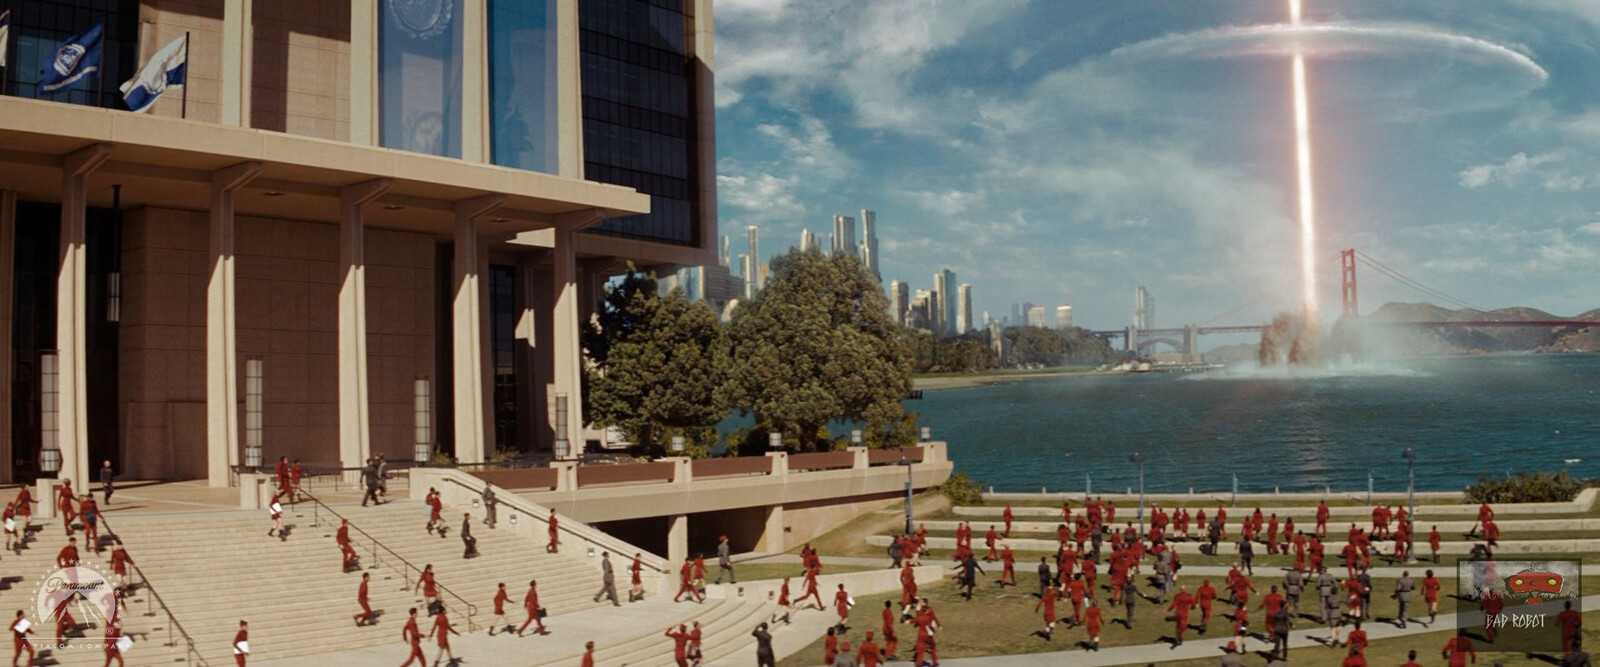 Starfleet Federation Building Set Extension. 2.5D projections with flag simulations.